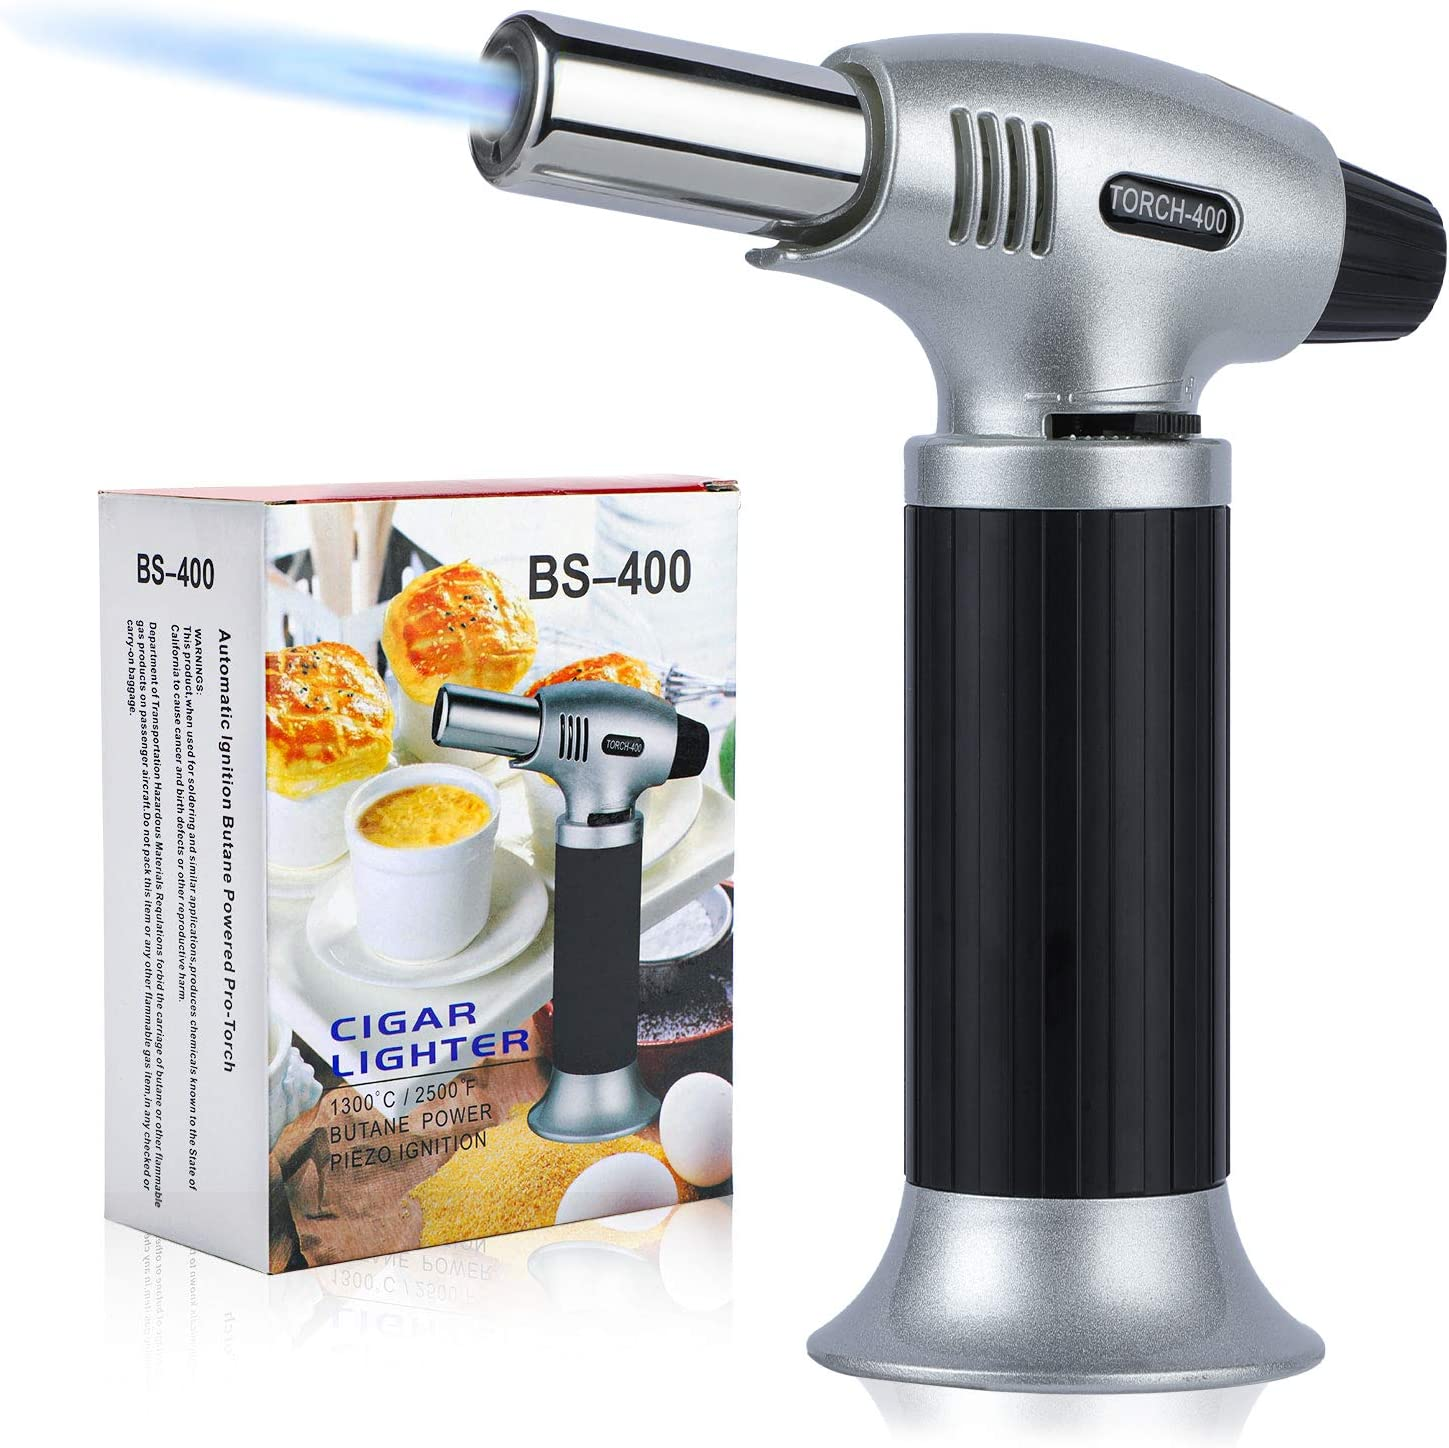 ORNOOU Butane Torch, Refillable Culinary Torch, Adjustable Kitchen Food Torch Lighter for Creme Brulee, BBQ, Baking, Desserts and Crafts (Butane Gas Not Included), Black